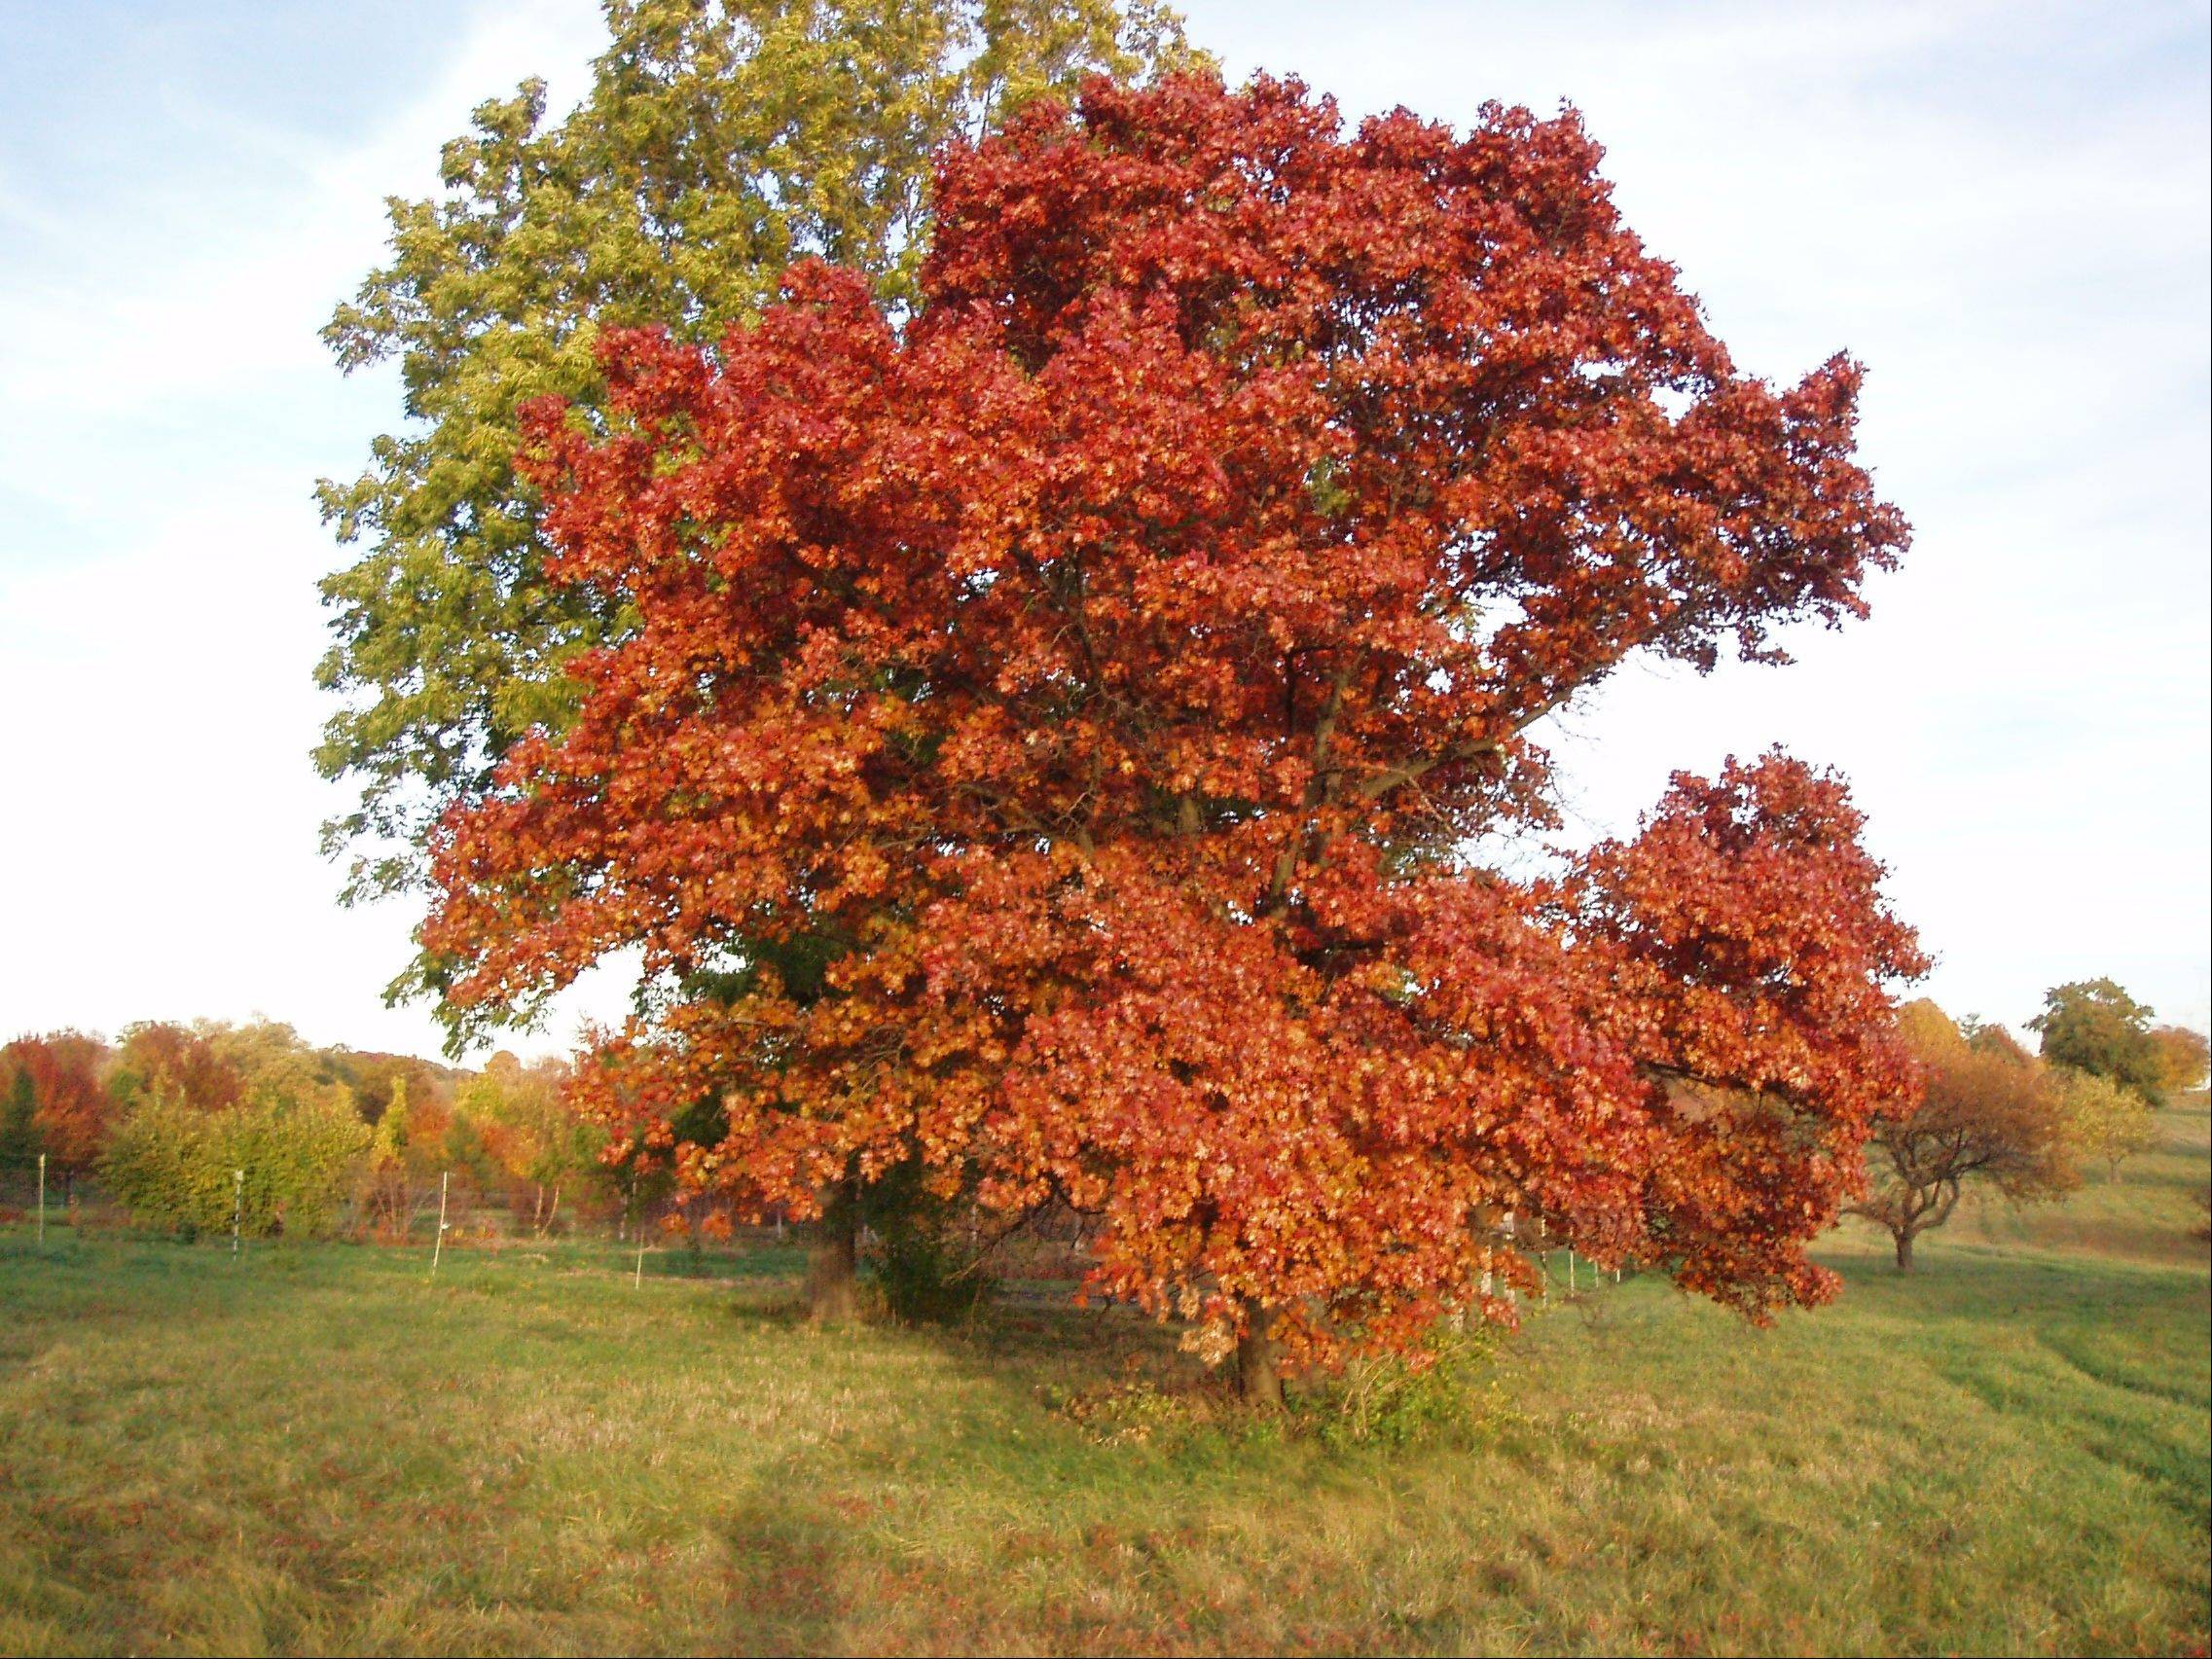 The mapleleaf oak is one of the endangered oaks that Andrea Kramer is studying.